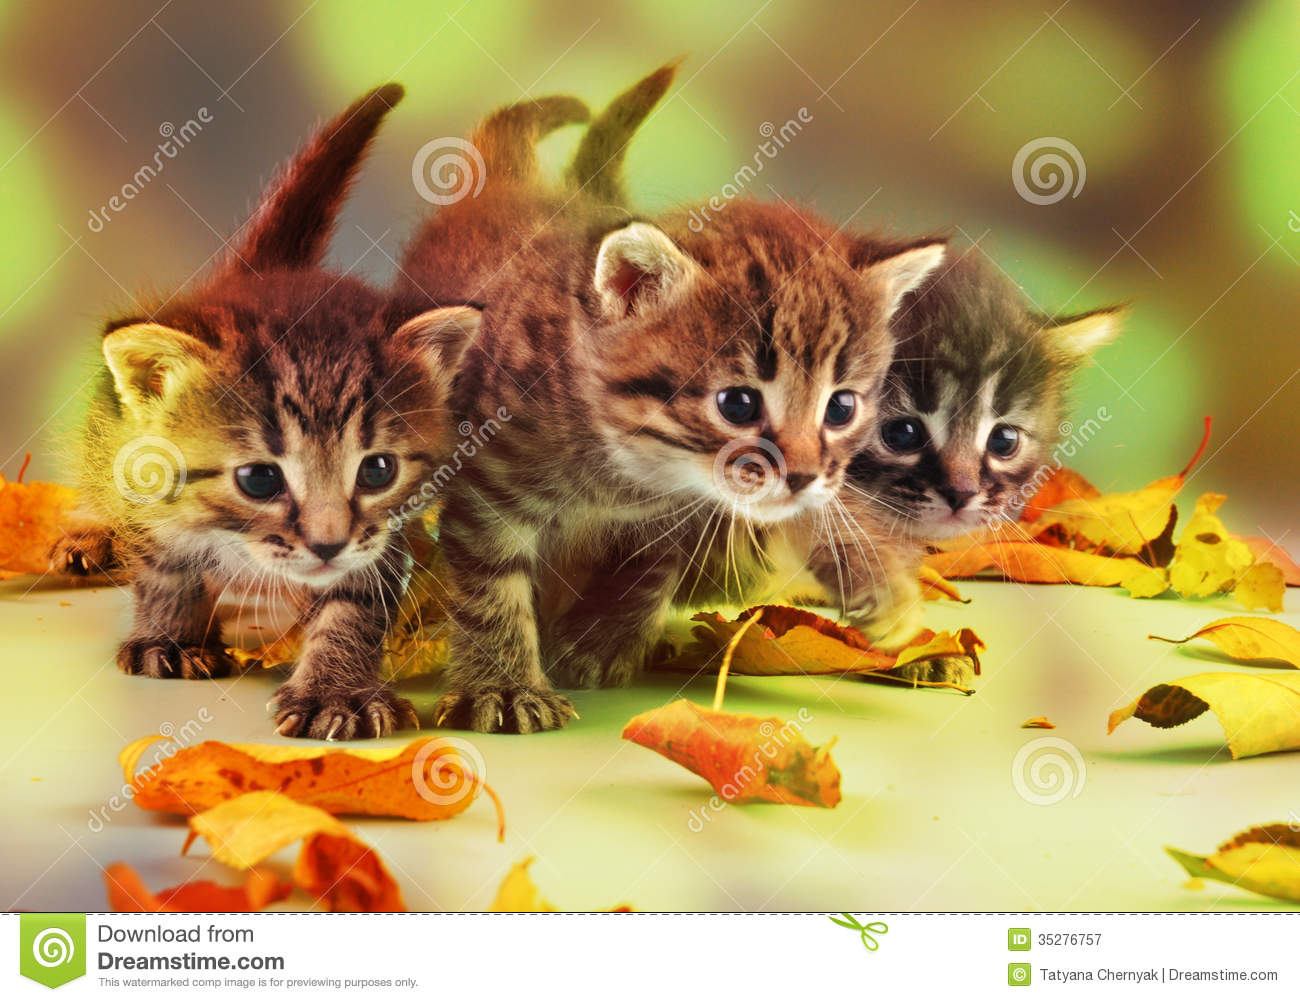 Playing In The Fall Wallpaper Group Of Small Kittens In Autumn Leaves Stock Image